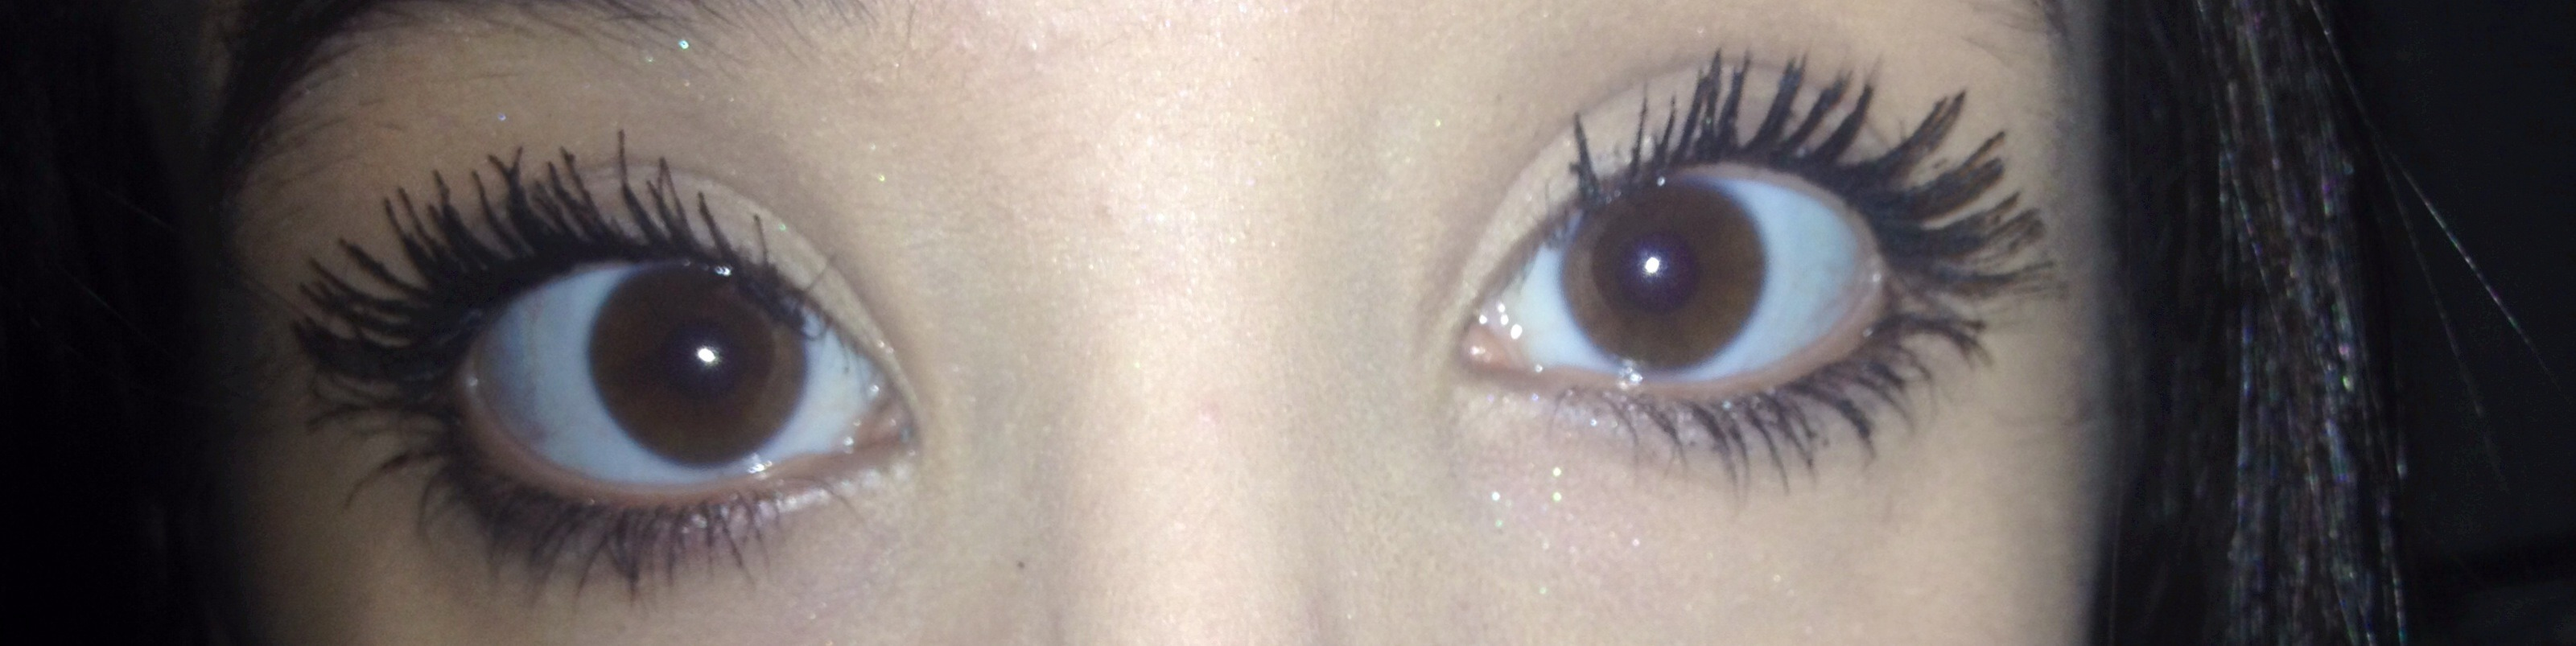 baby powder lash lengthening trick results: personally I don't like it.